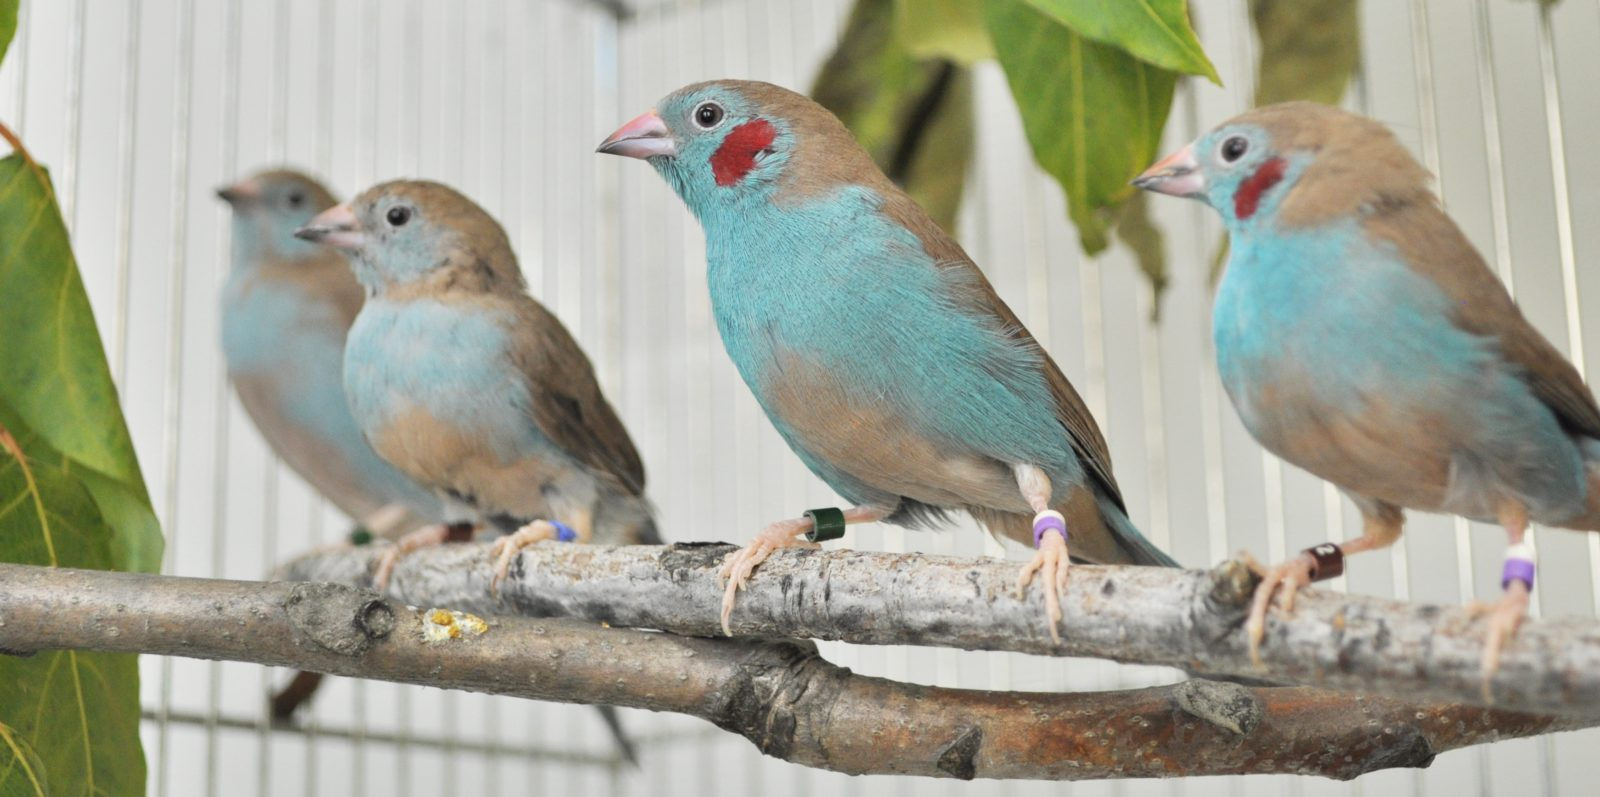 Males and females of the red-cheeked cordon-bleu, which is a closely-related species of the blue-capped cordon bleu.